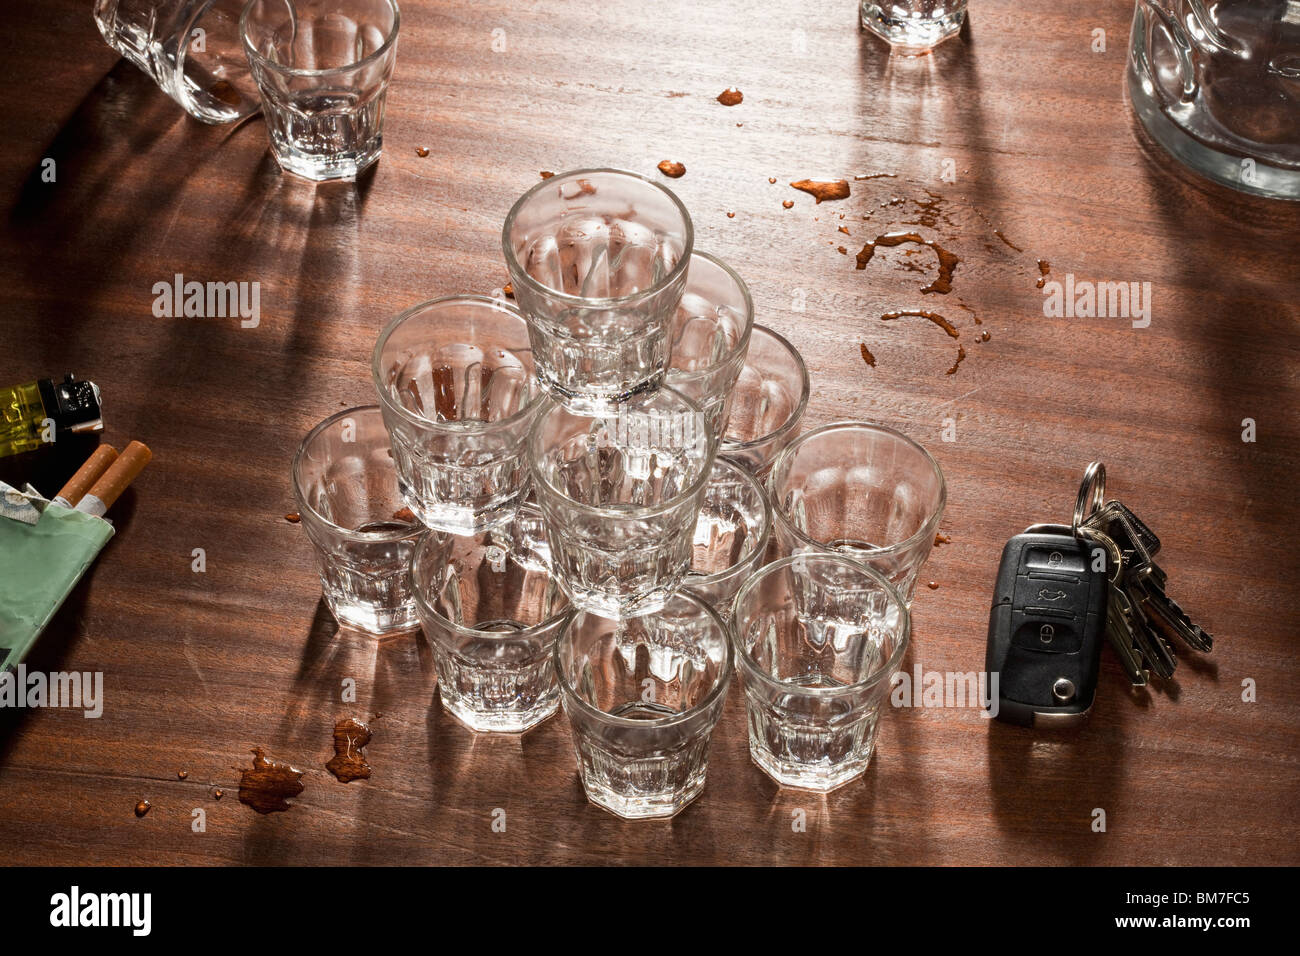 Glasses Stacked On Top Of Each Other On A Messy Table - Stock Image